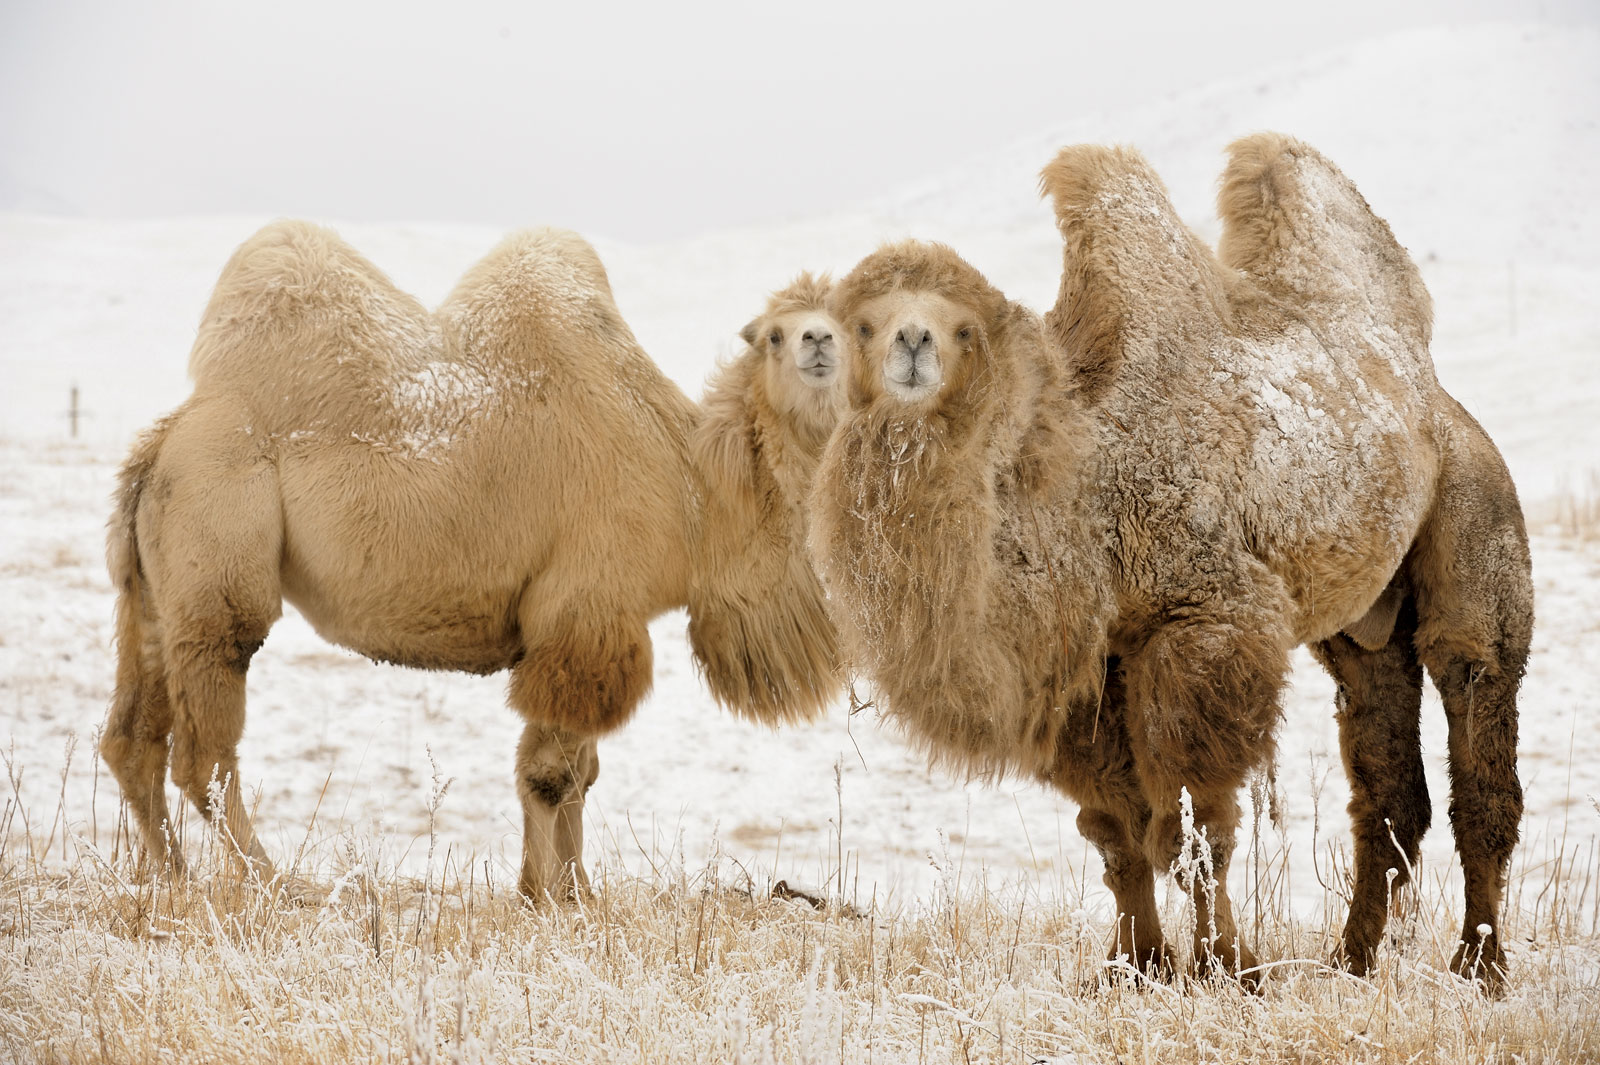 Bactrian camel | The Life of Animals